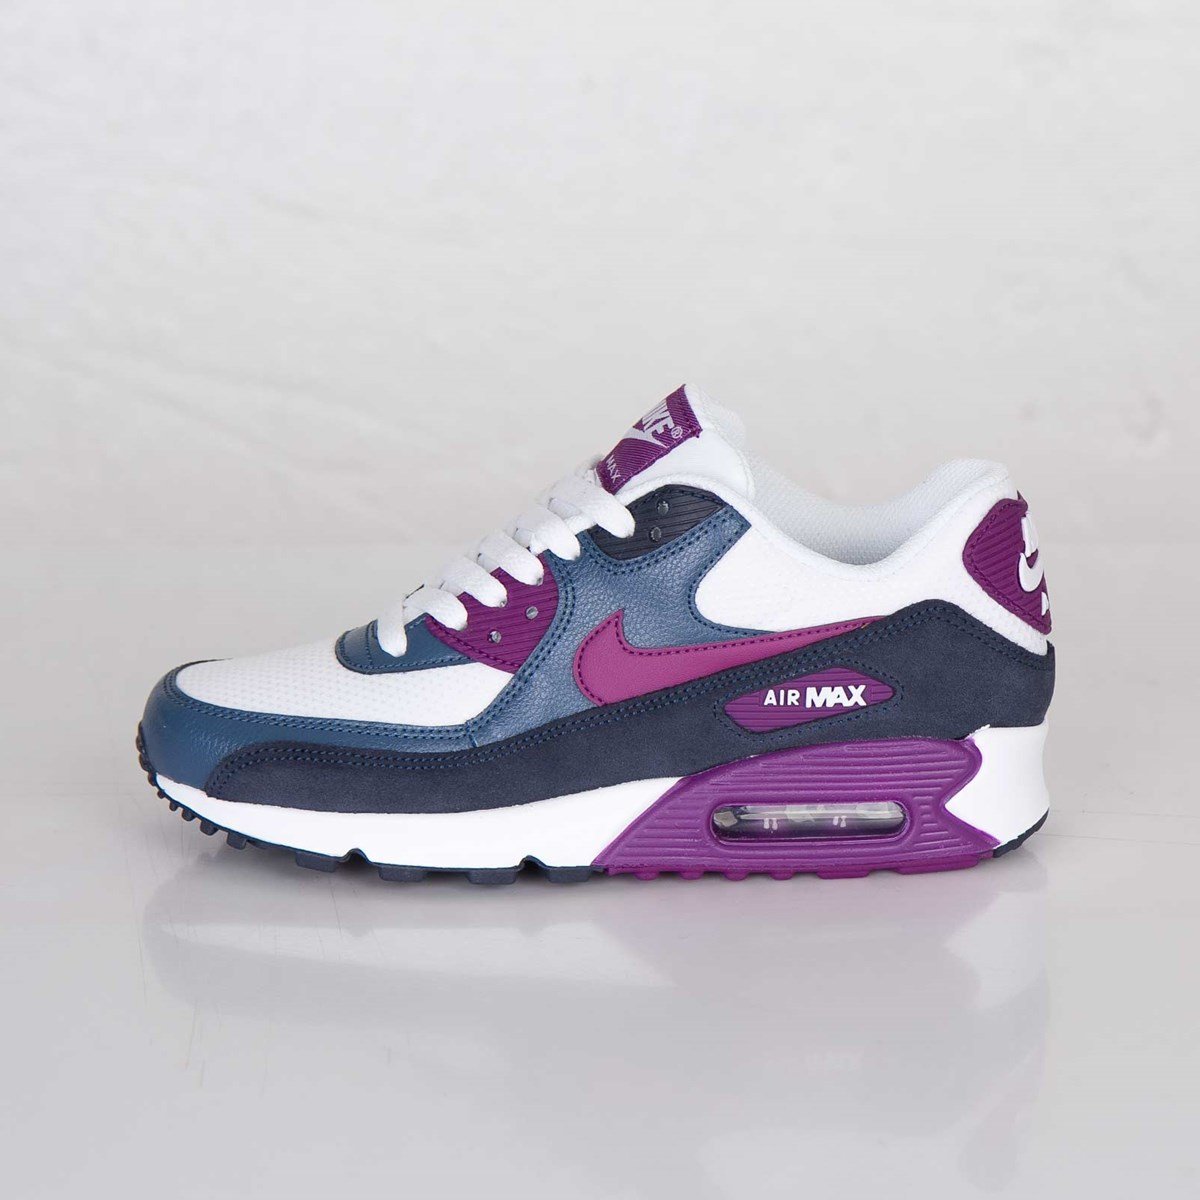 reputable site 3ccf6 90291 Nike Wmns Air Max 90 Essential - 616730-107 - Sneakersnstuff  sneakers   streetwear online since 1999